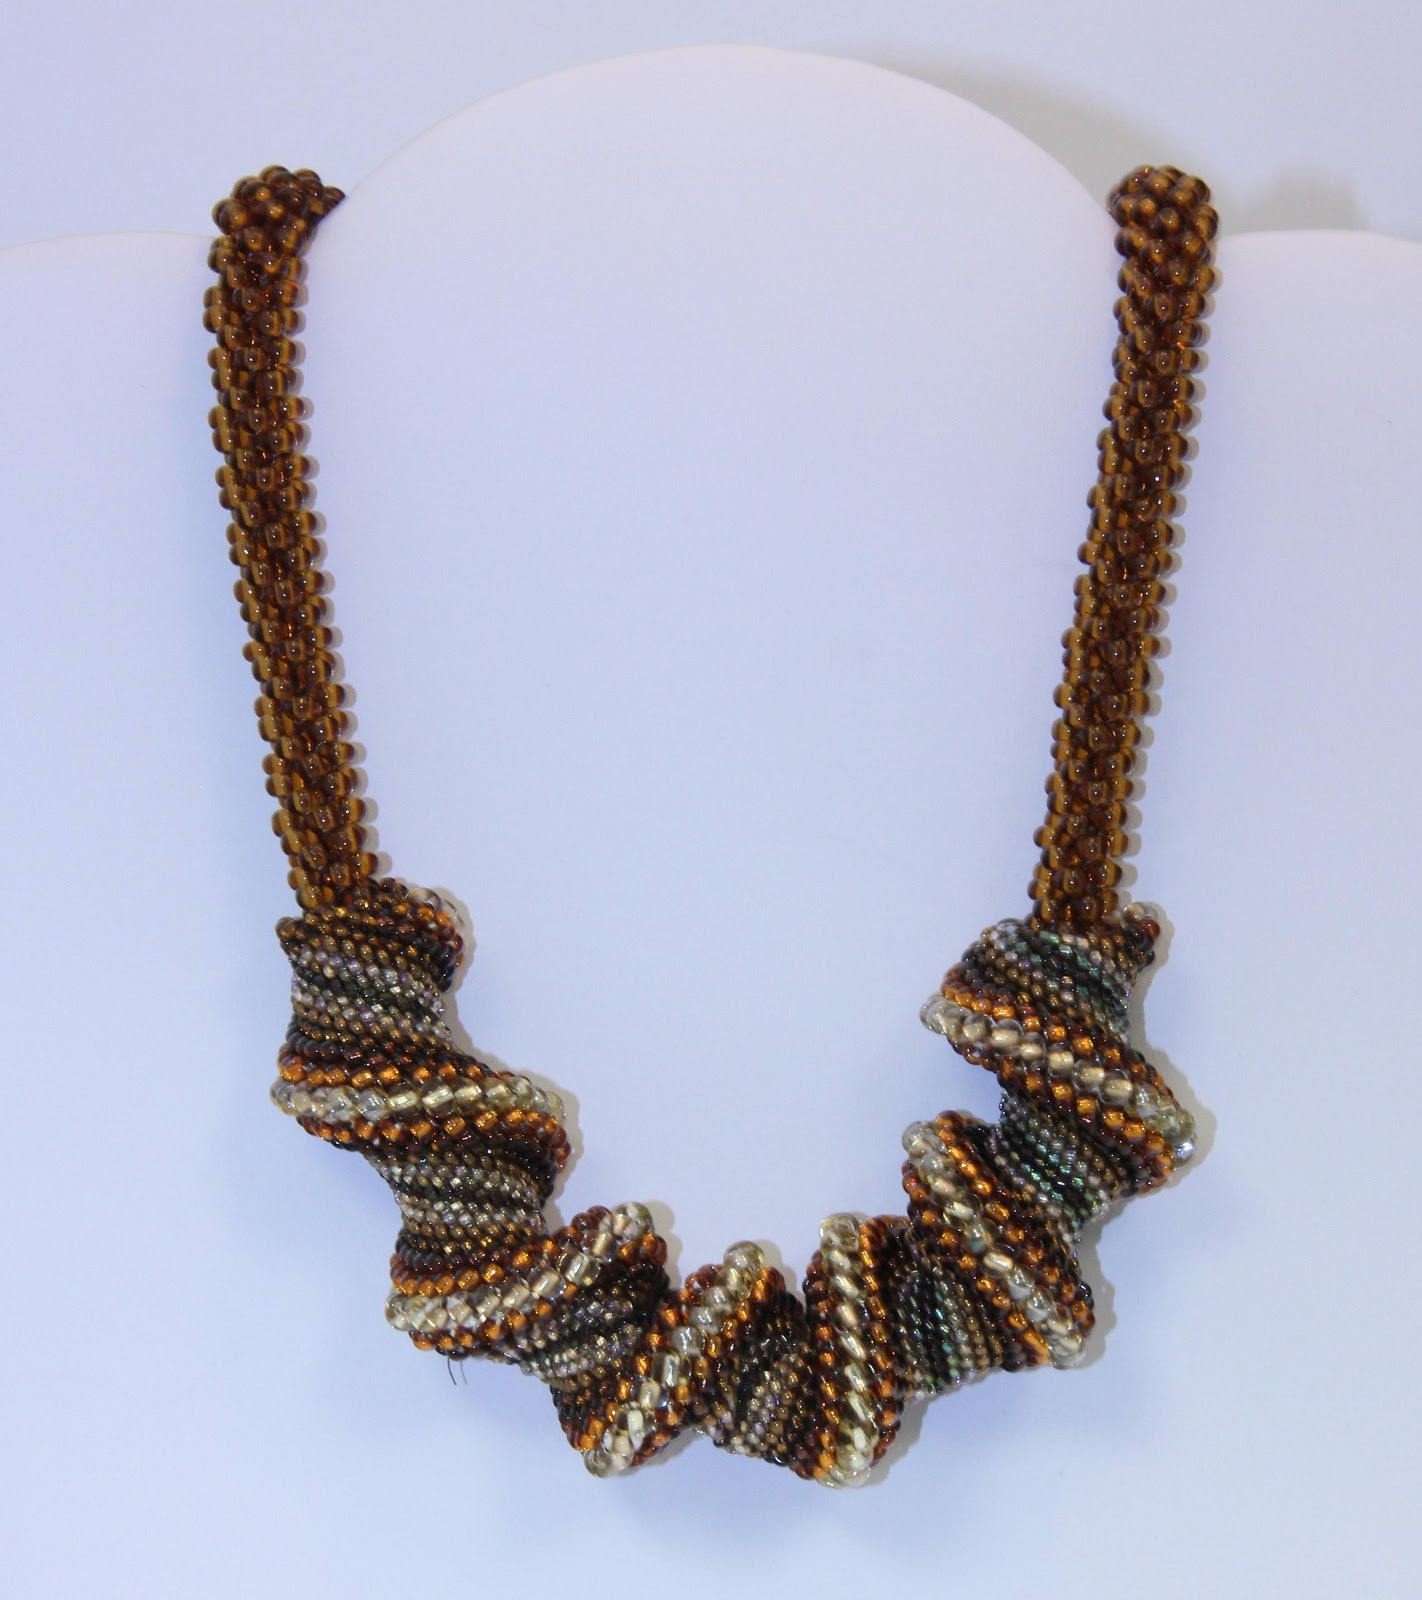 Kumihimo patterns with beads